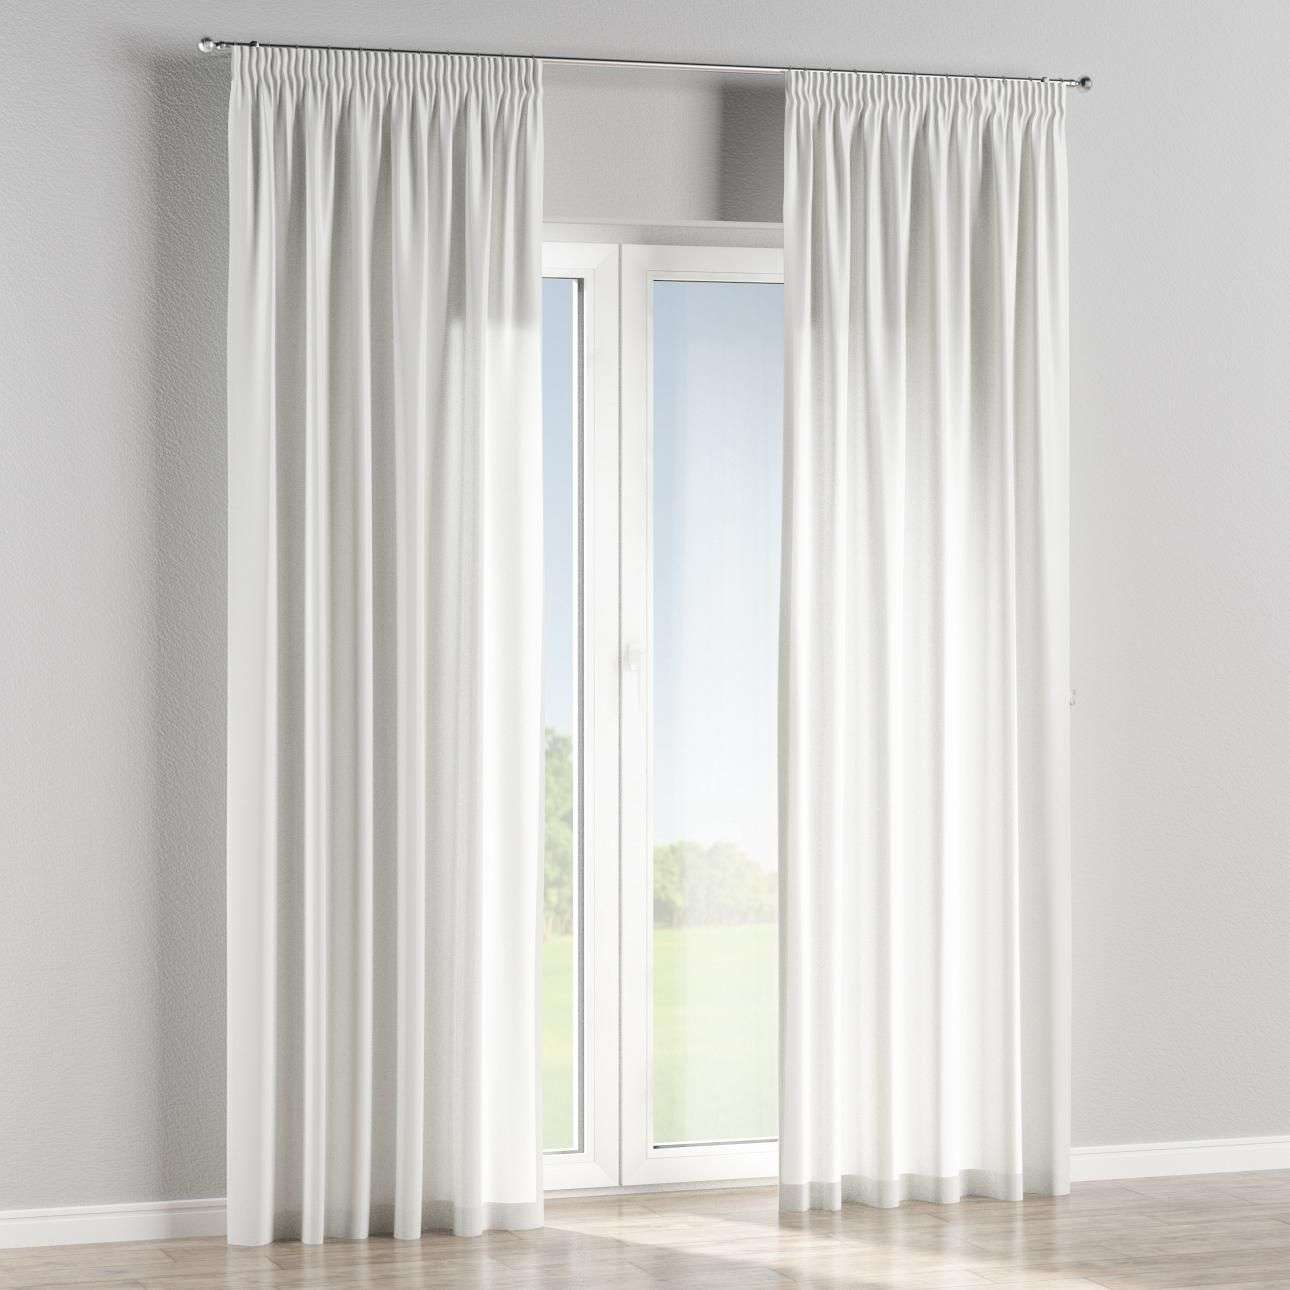 Pencil pleat curtains in collection Cardiff, fabric: 136-32